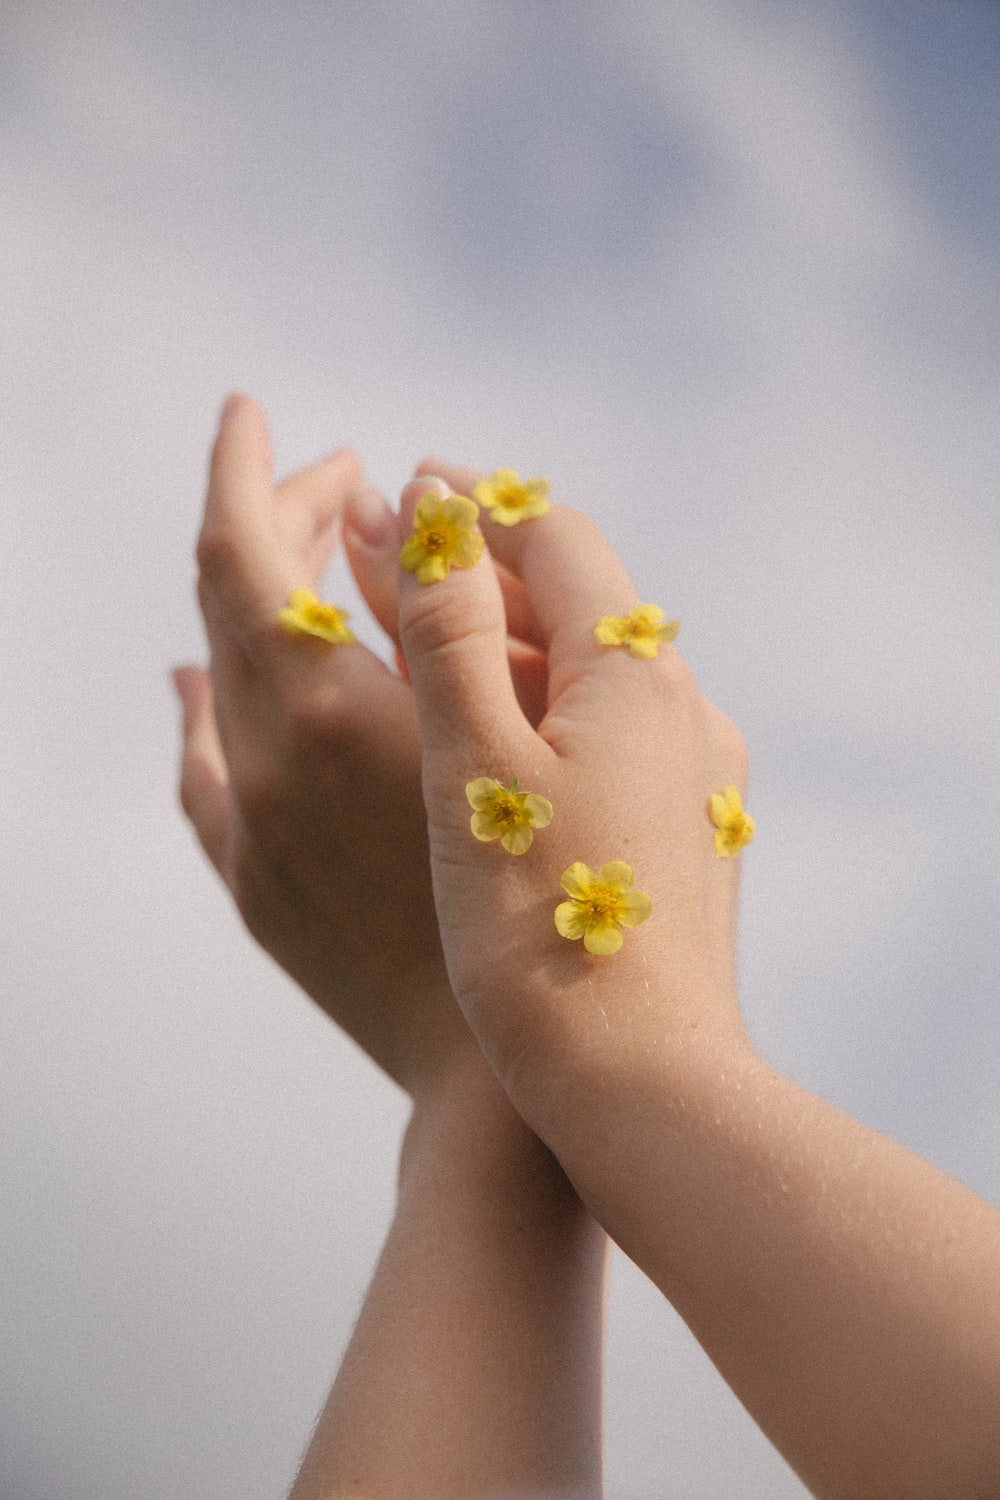 person holding yellow flower petals